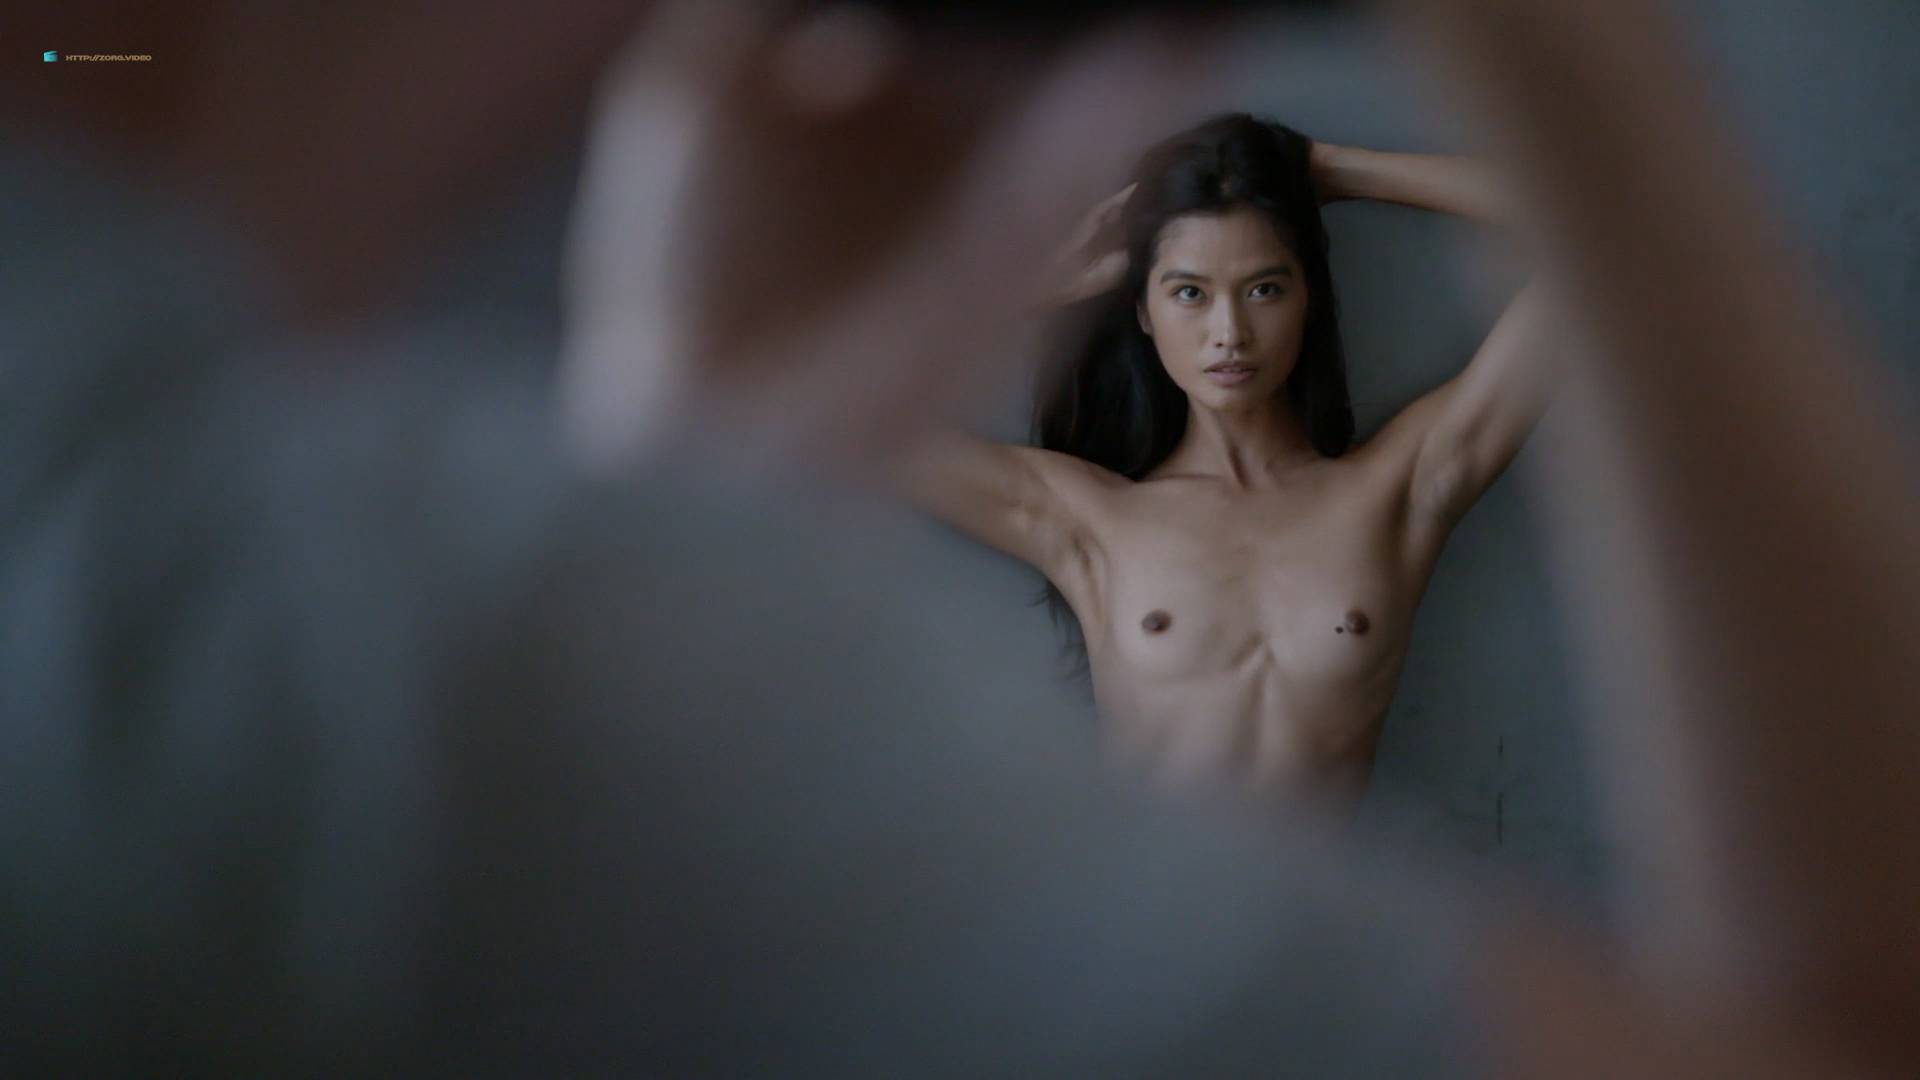 Rachel Cook nude Jessica Clements, Ebonee Davis and others all nude - Nude (2017) HD 1080p (13)